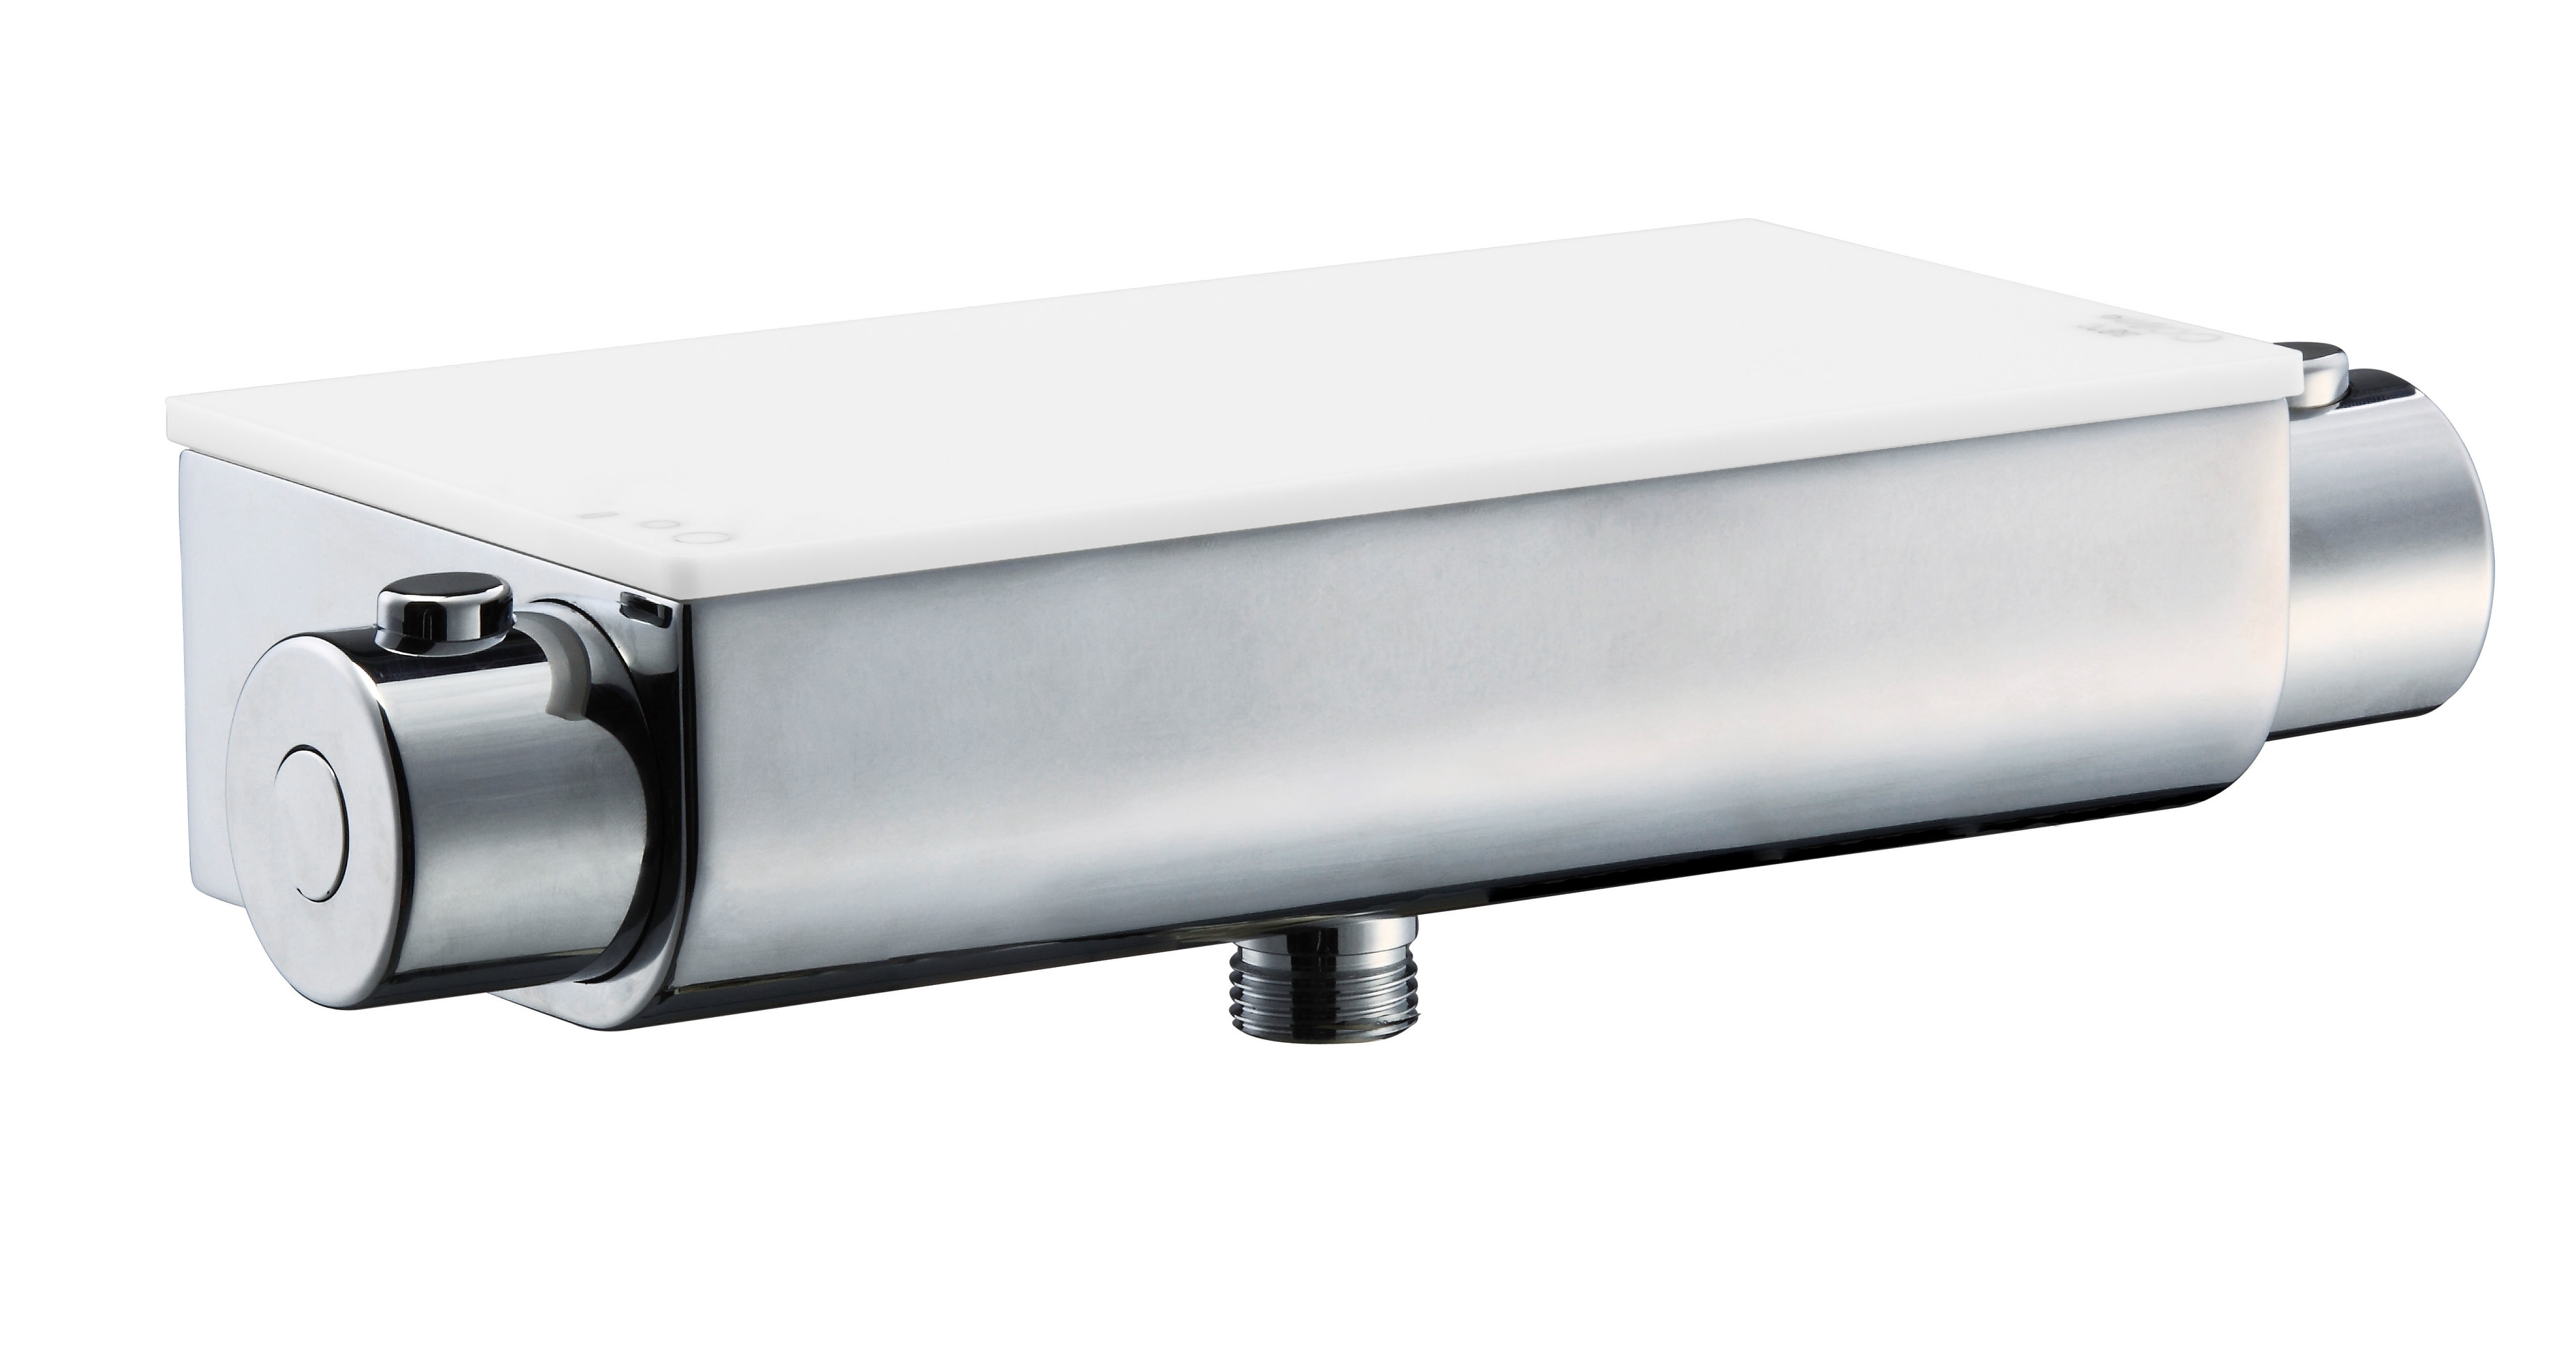 Image of ADOB Duschthermostat